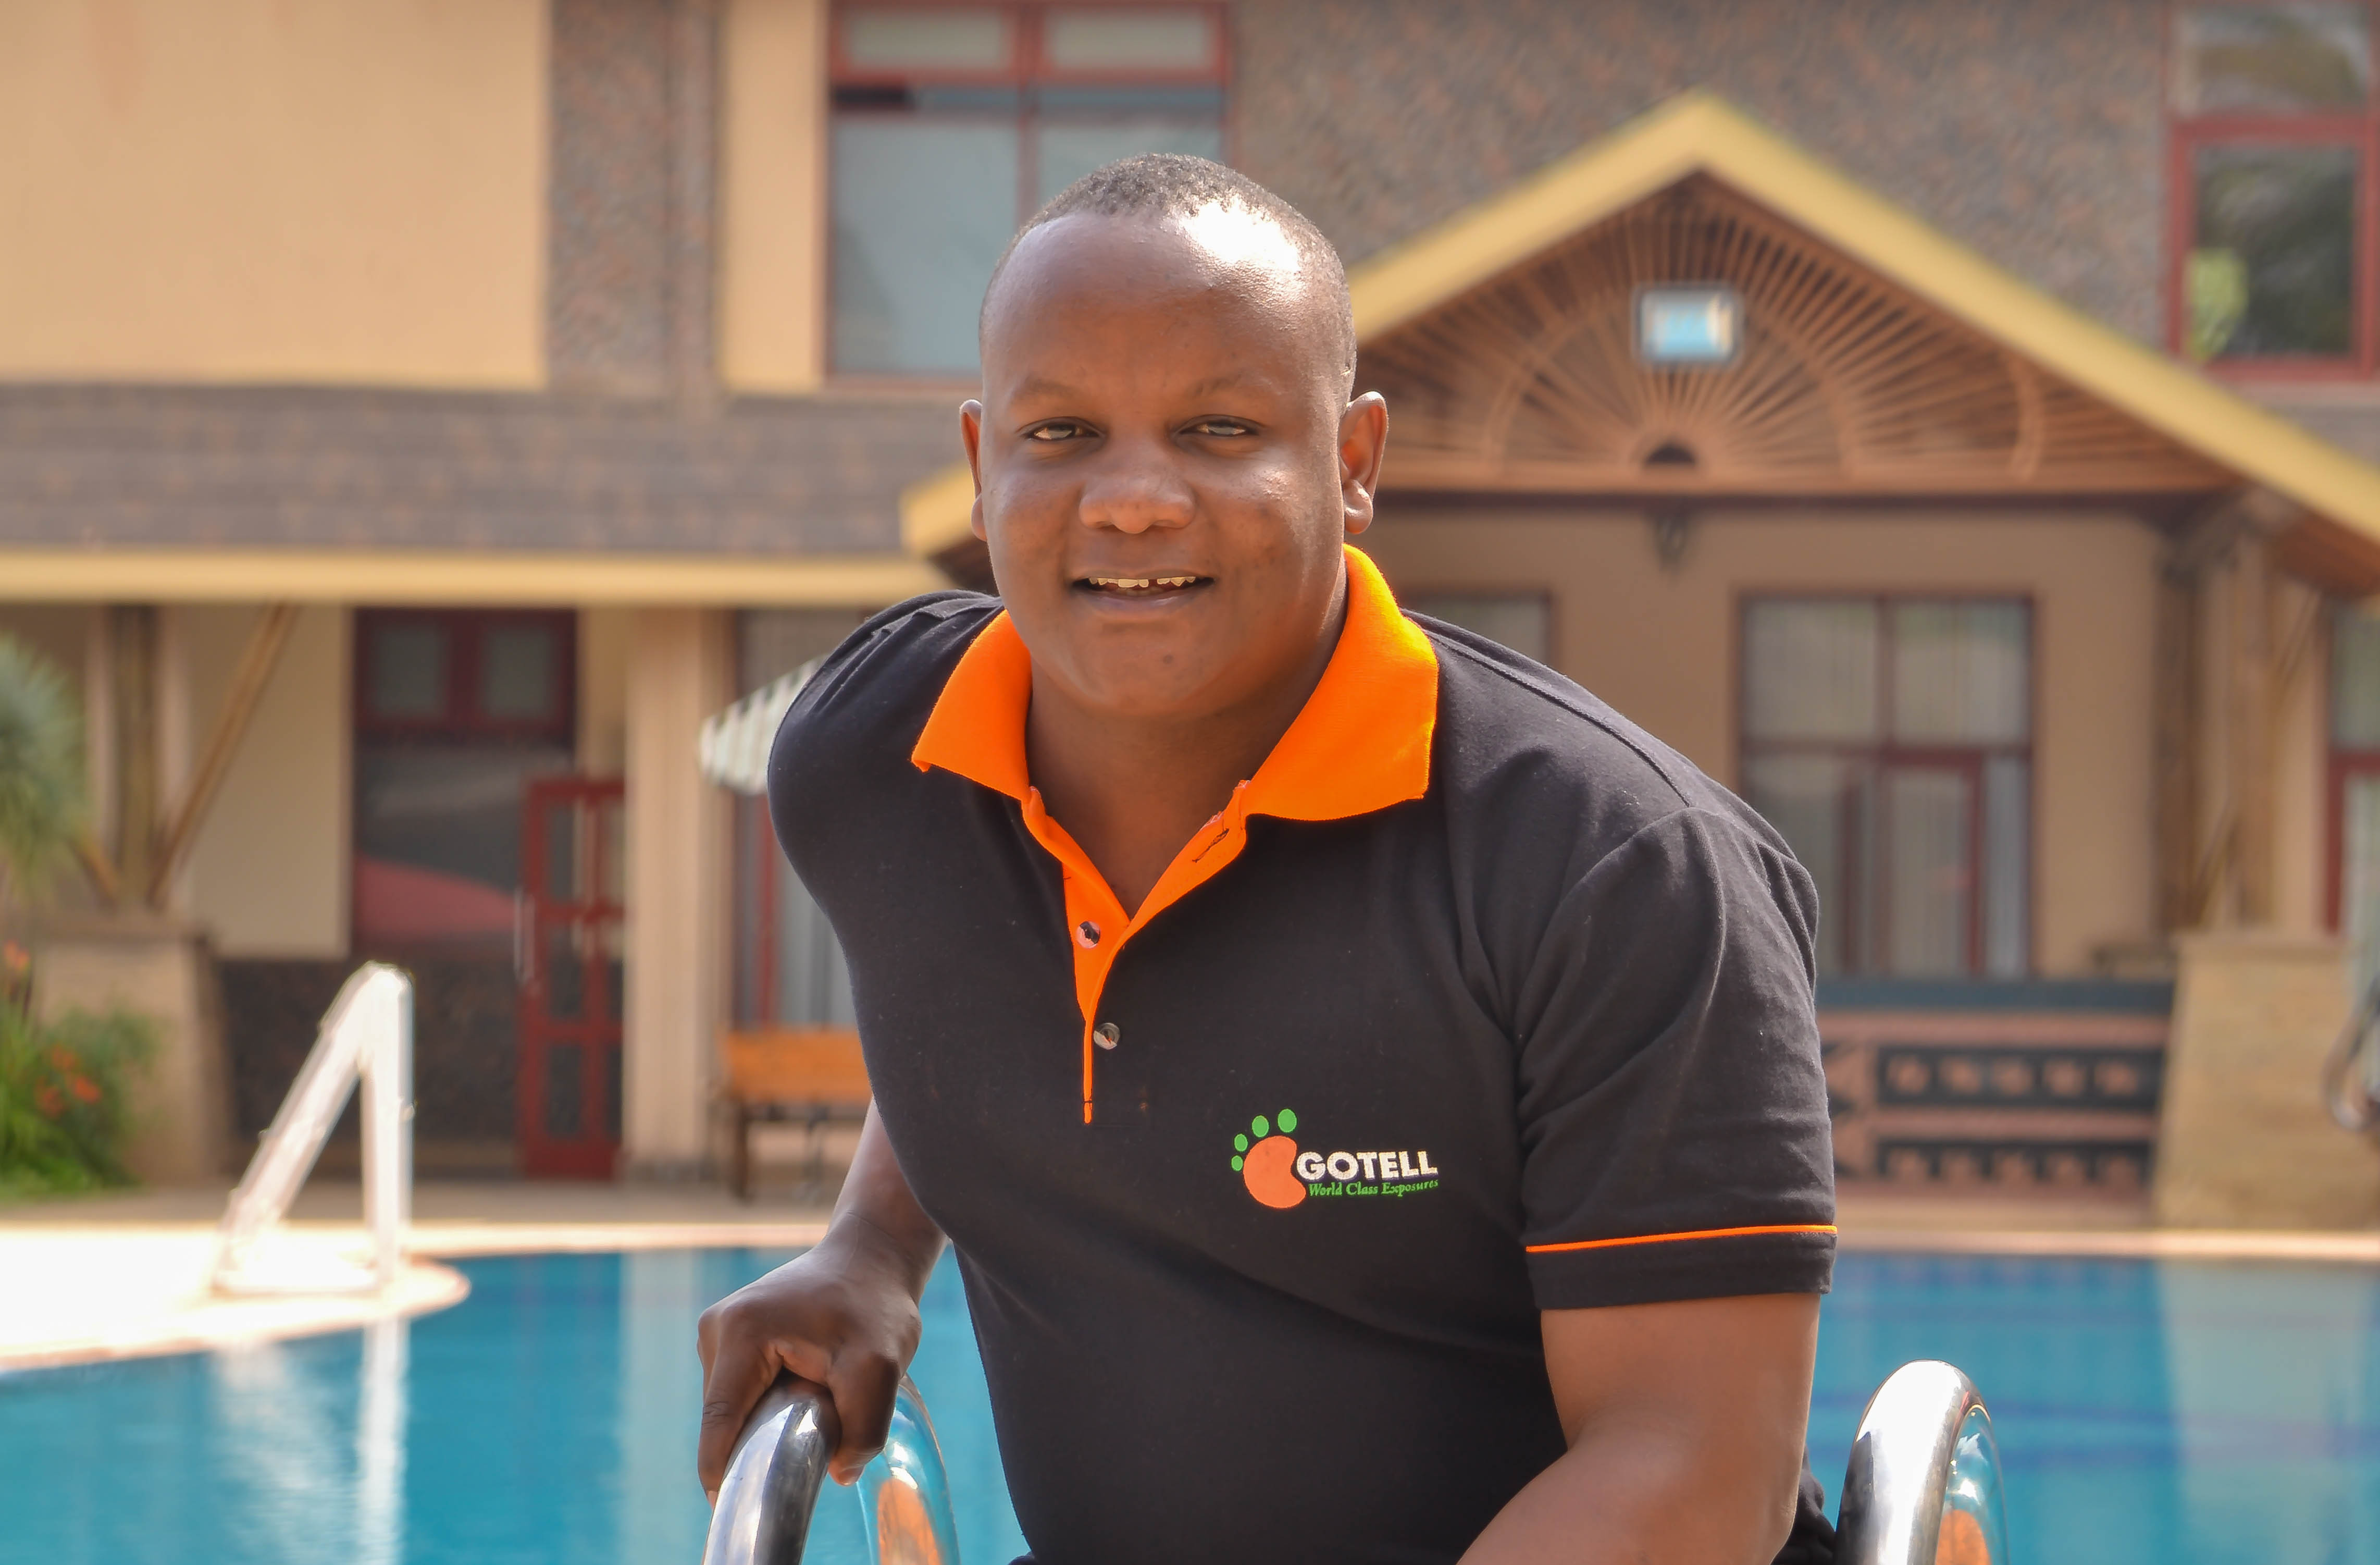 Joseph Mucira is the founder of jmexclusives